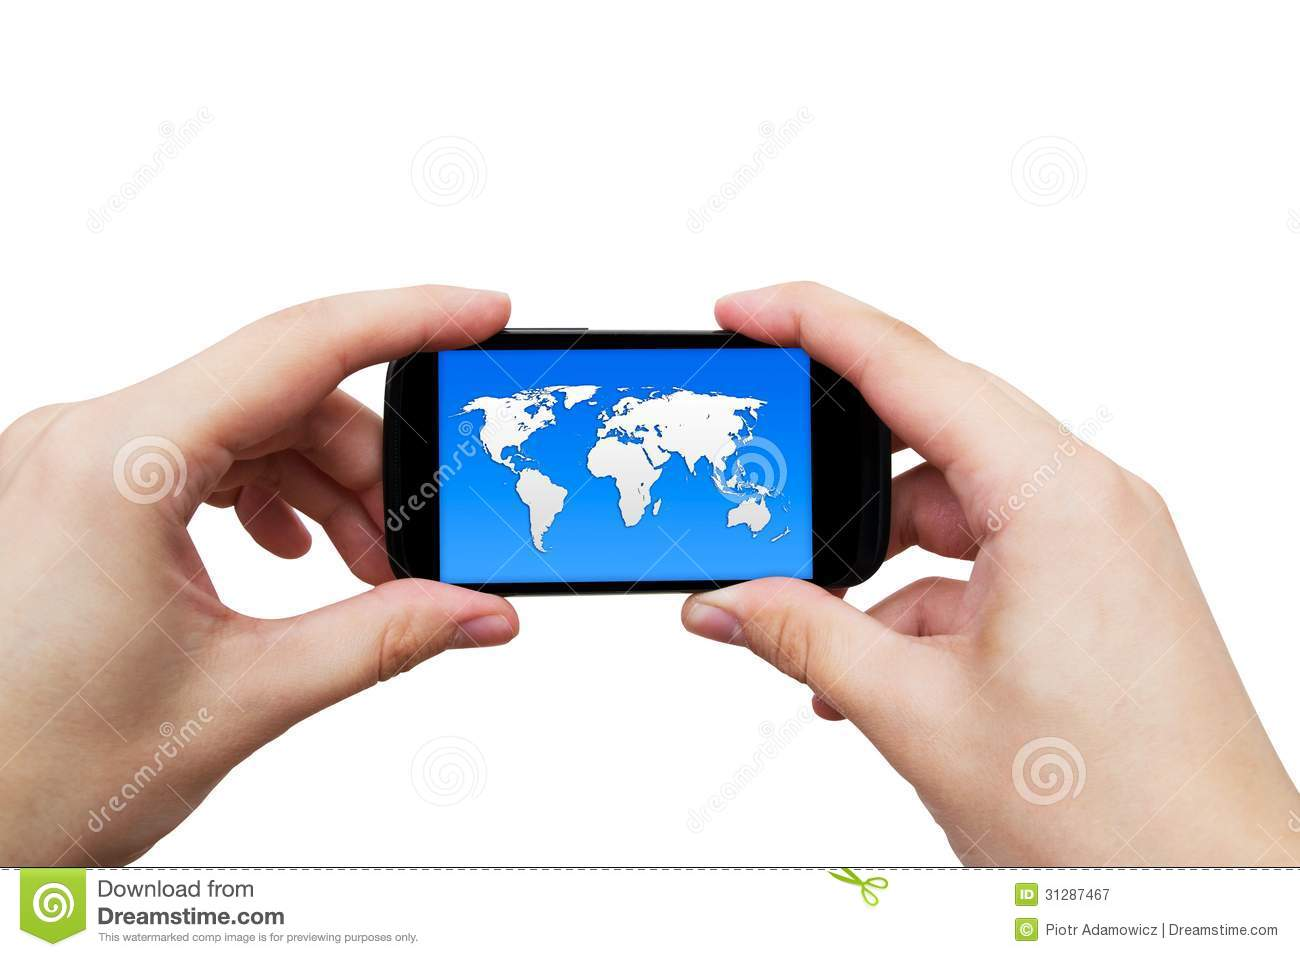 Mobile phone with world map on display stock illustration mobile phone with world map on display publicscrutiny Choice Image